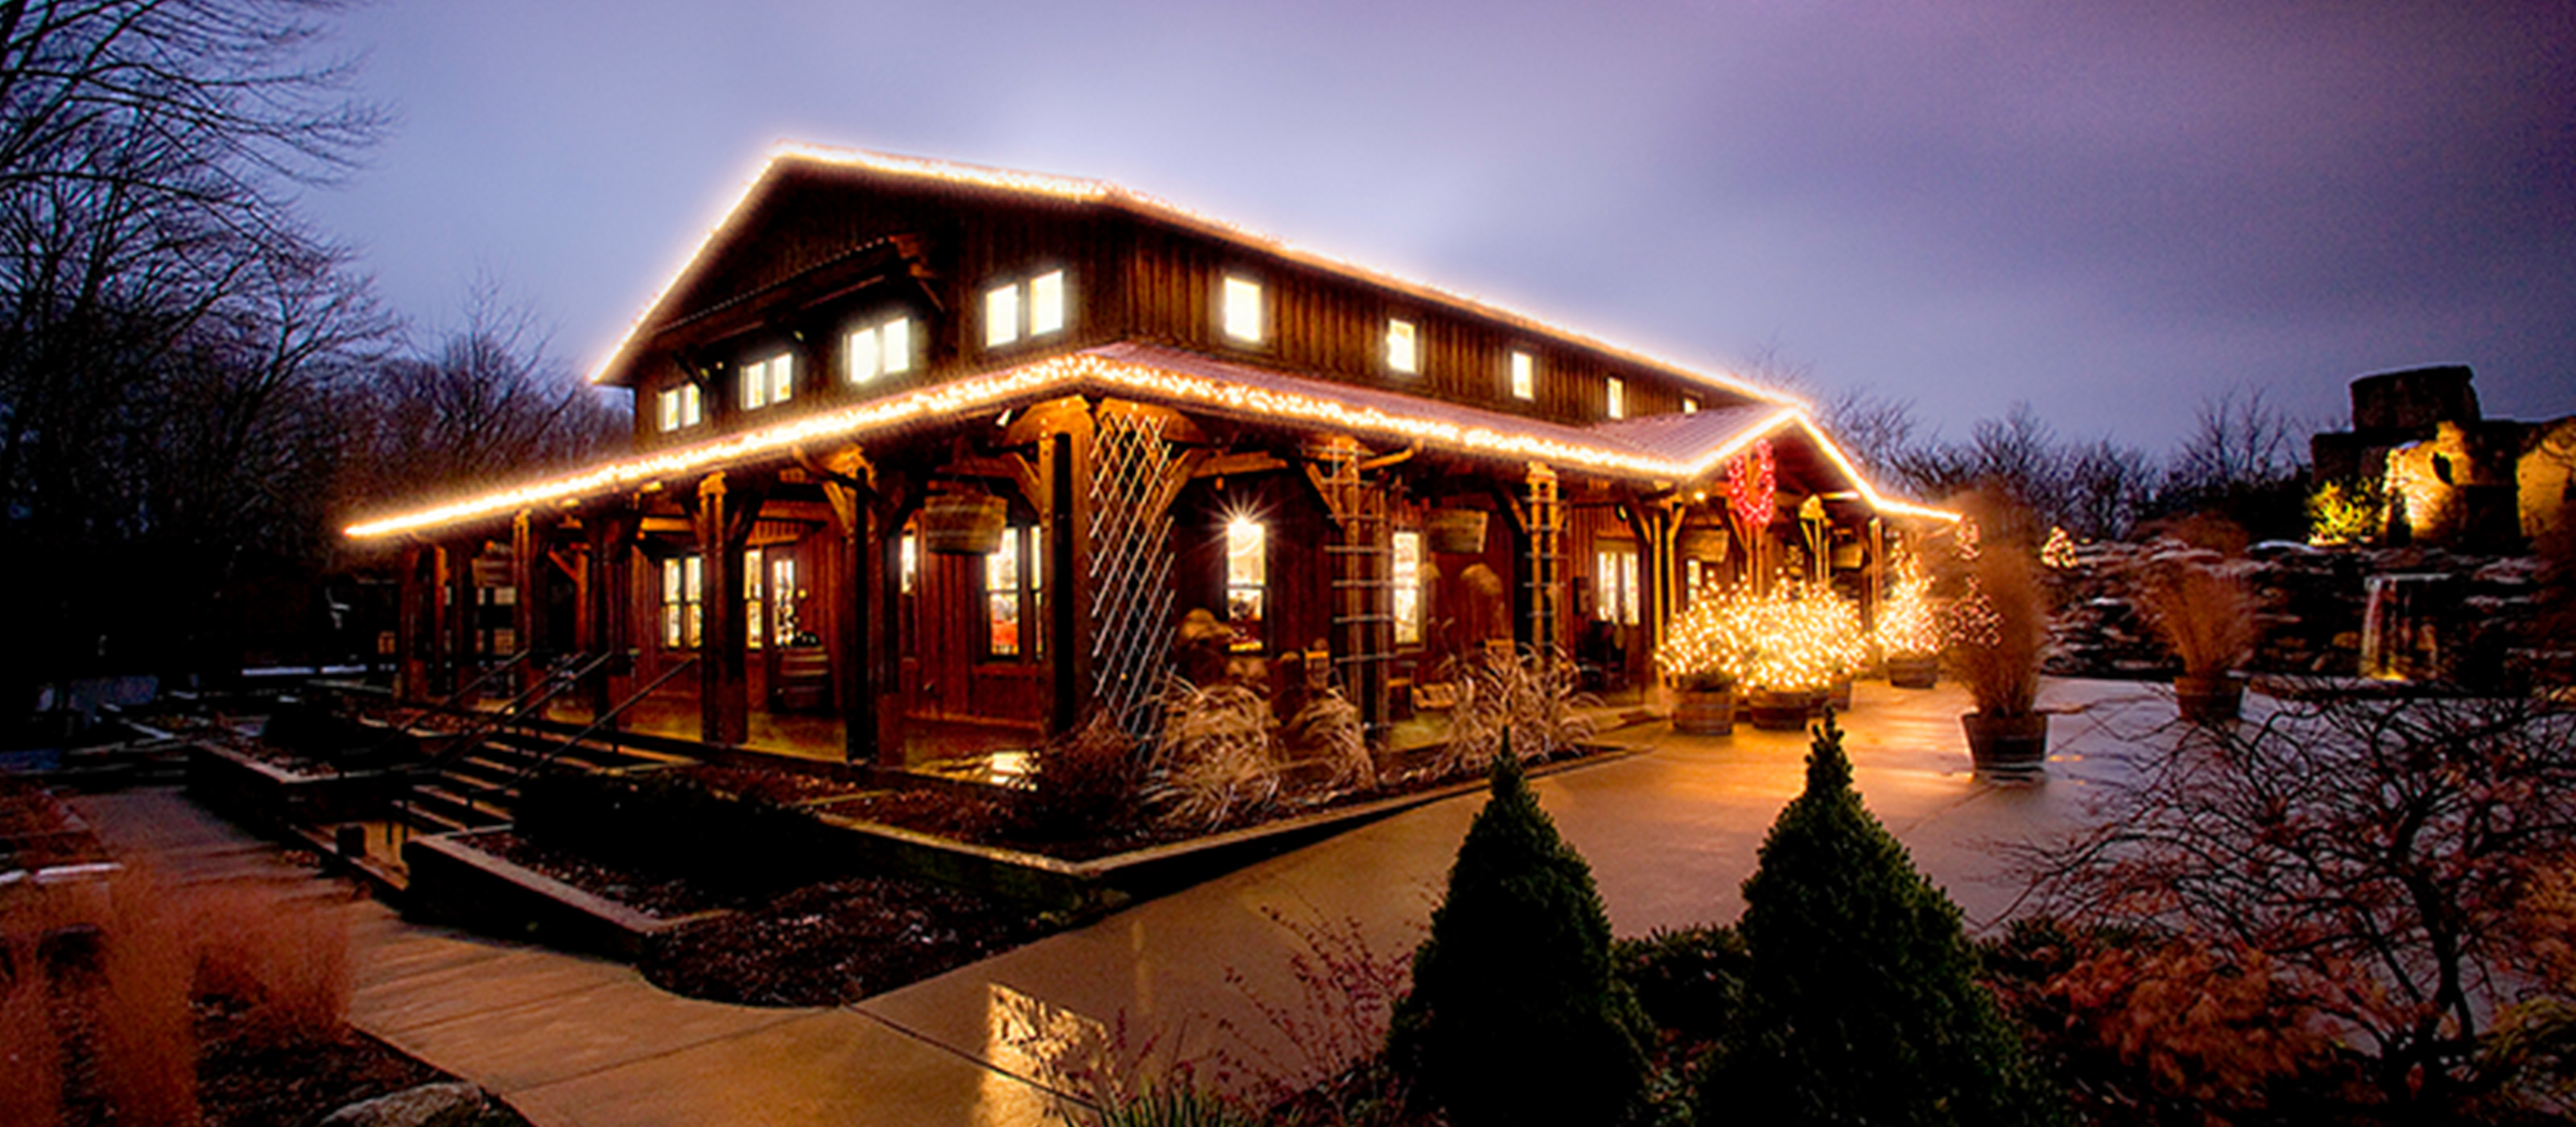 Holiday lights at Oliver Winery during the winter season.